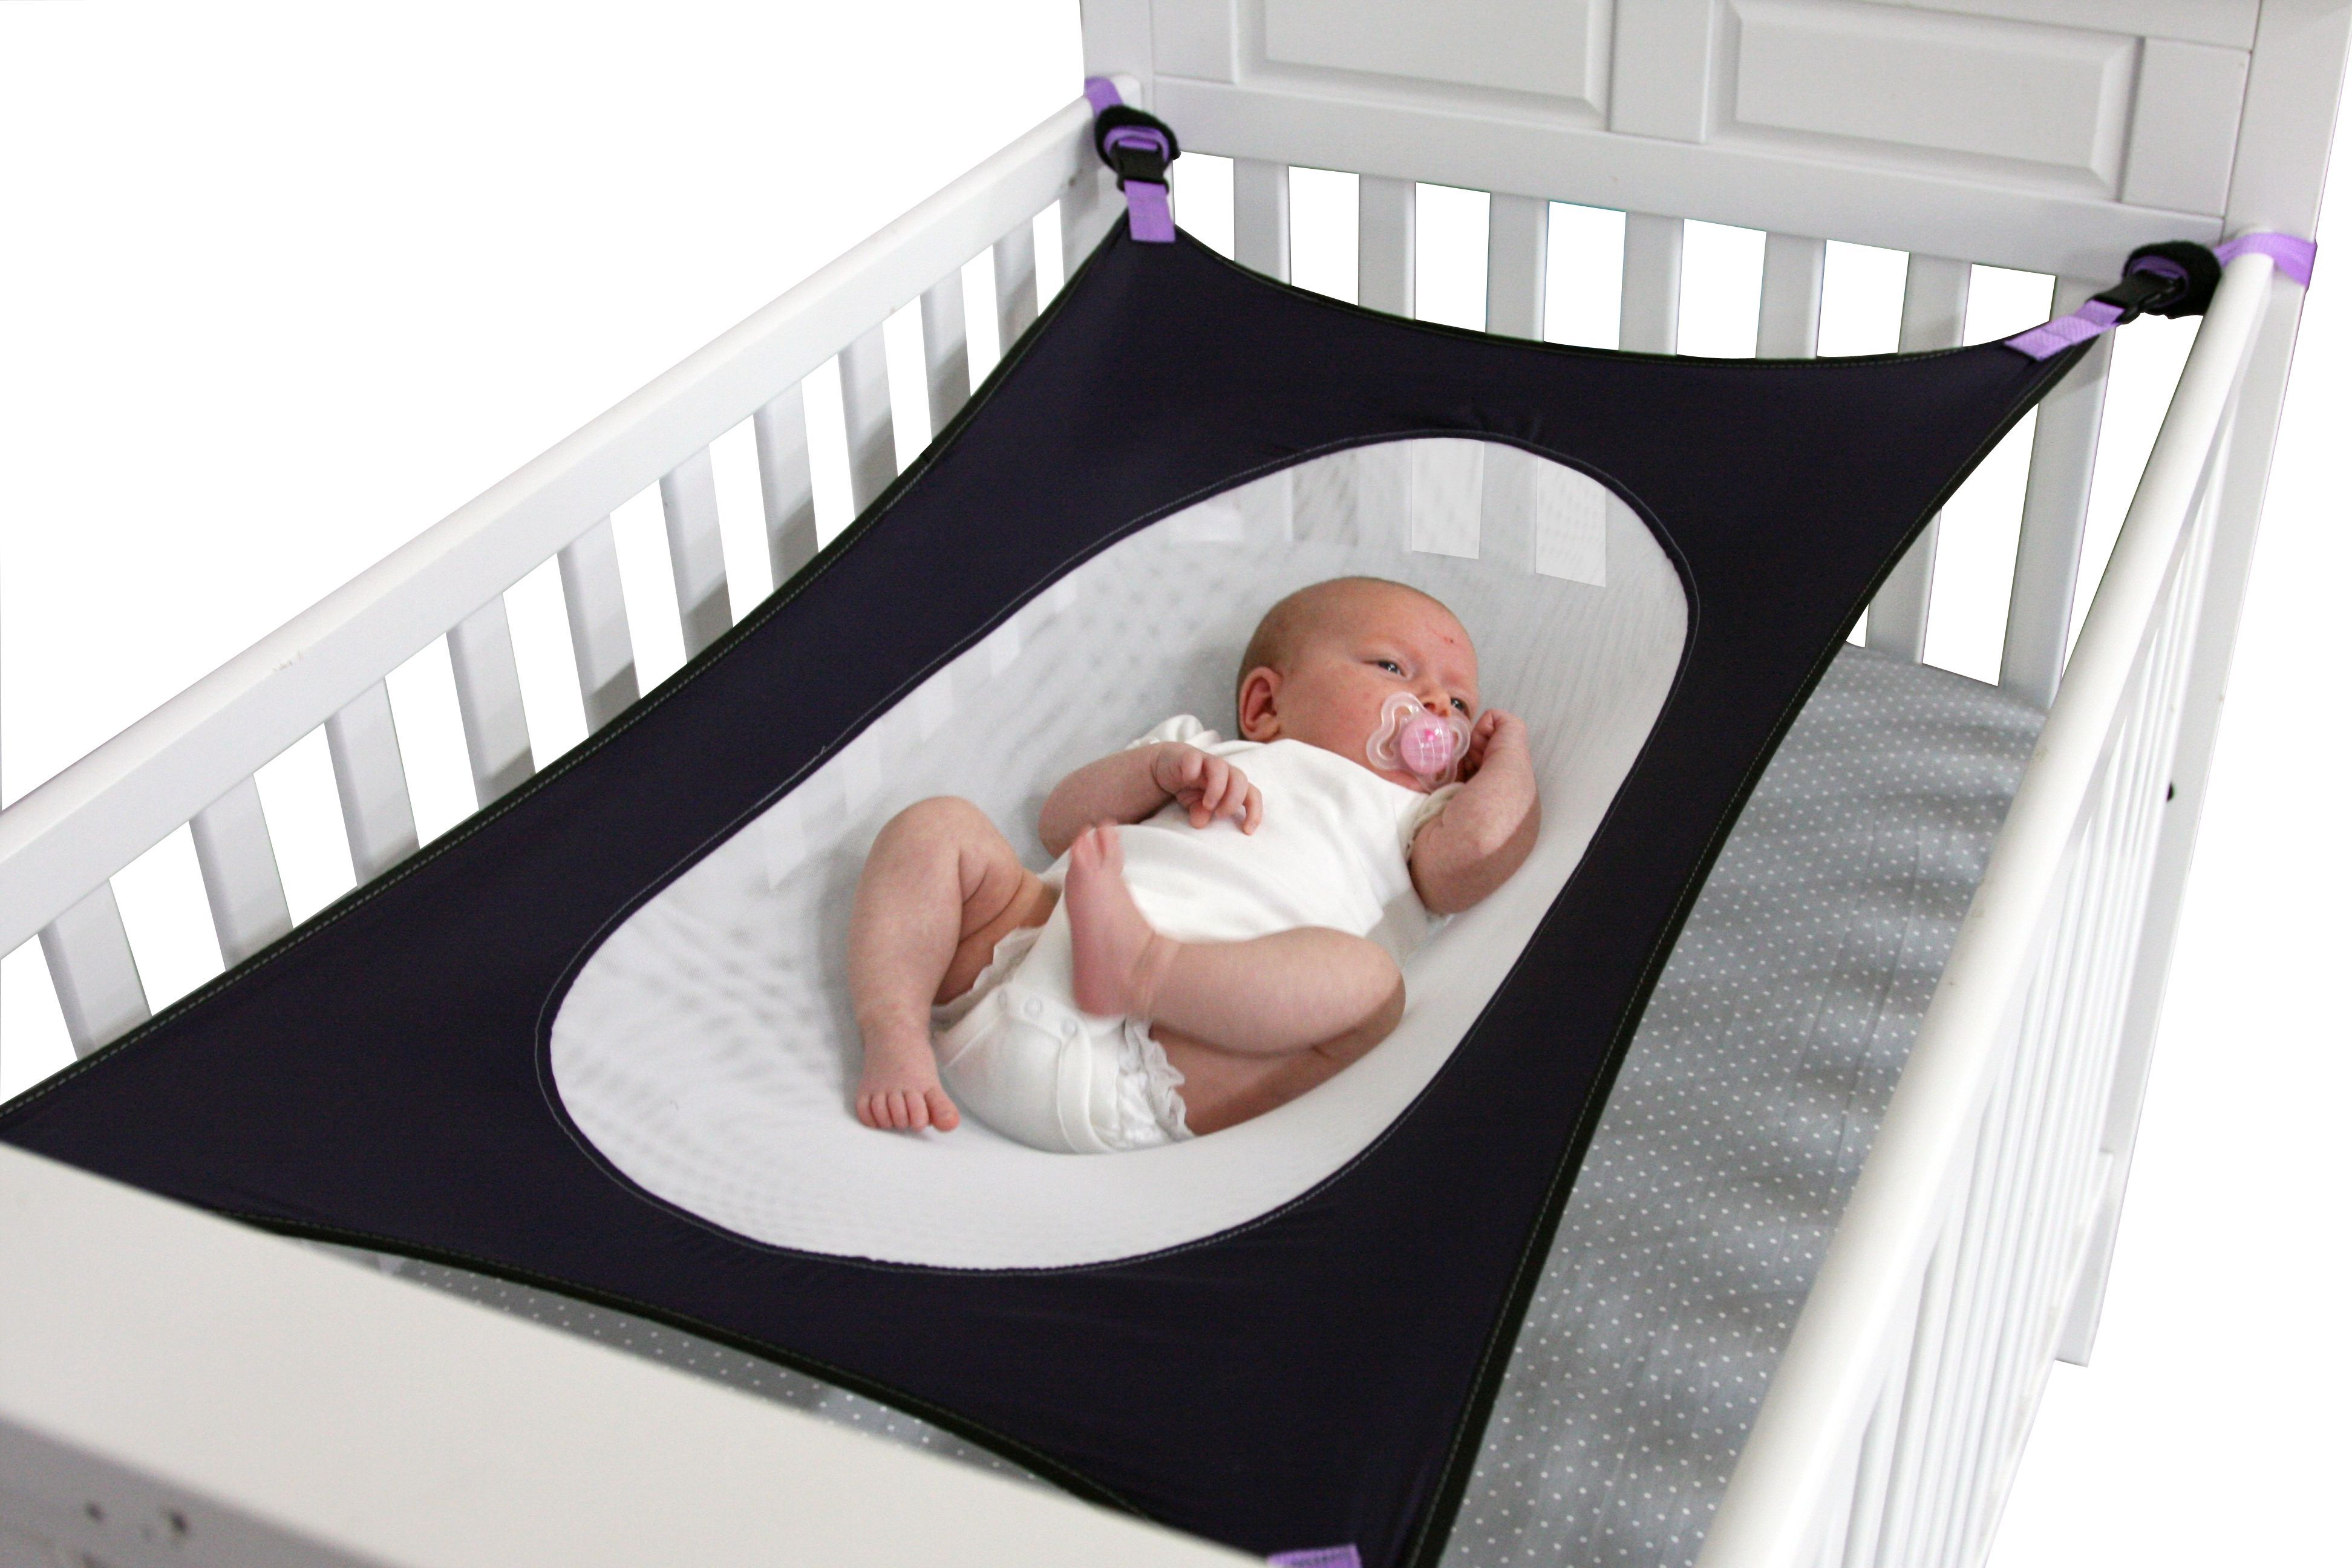 and cribs crib webnuggetzcom bed lotus playard l larger travel view sewluxesew portable toddler baby beds